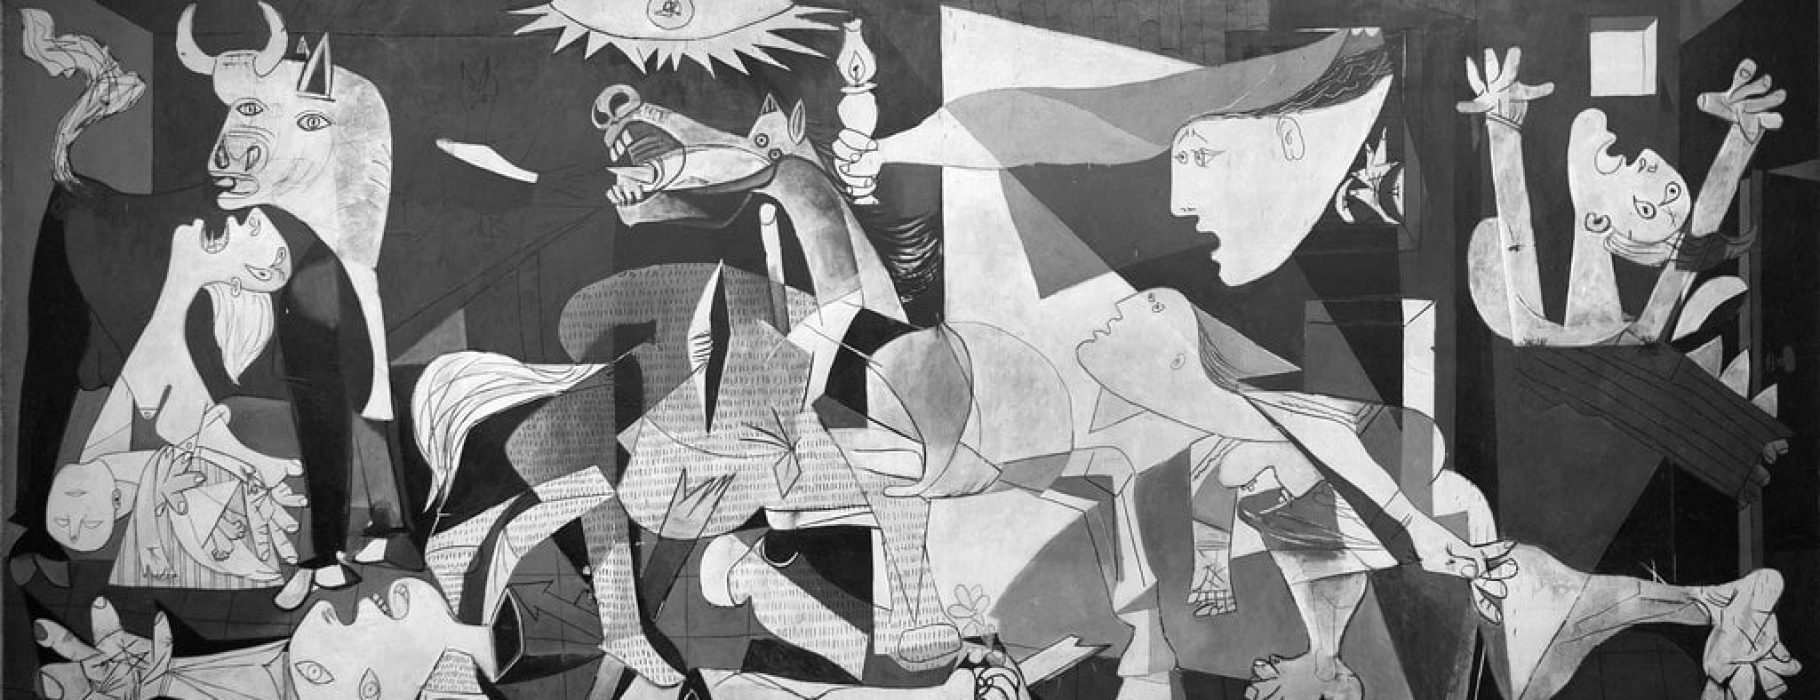 Picasso's painting immortalized the scenes of horror when Guernica was bombed on behalf of General Franco's forces. The painting remains an emblem of resistance to the dishonesty of powerful aggressors: at the time, Franco denied responsibility for the horrors, claiming that